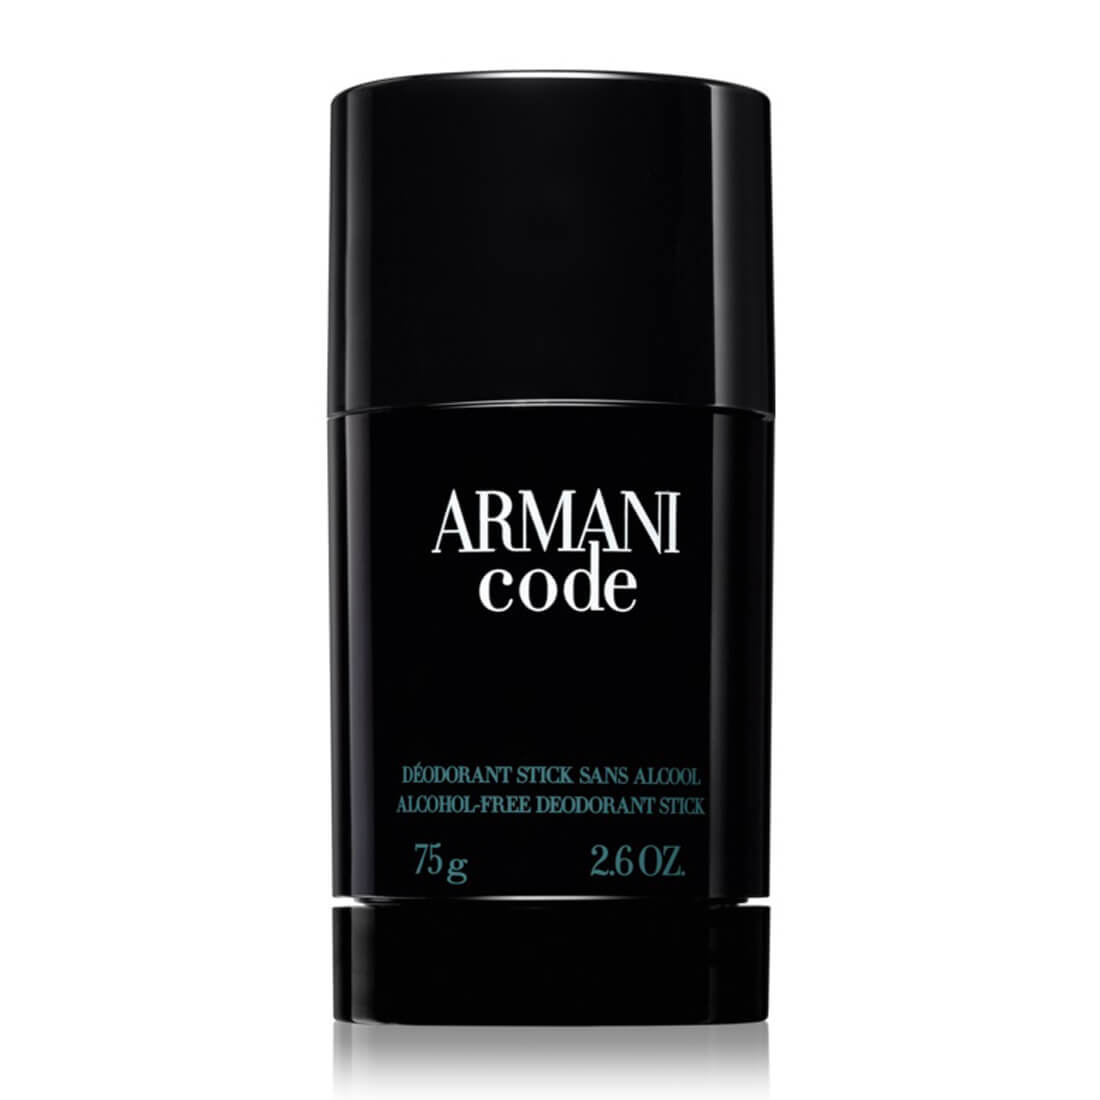 Giorgio Armani Armani Code Deodorant Stick For Men - 75g